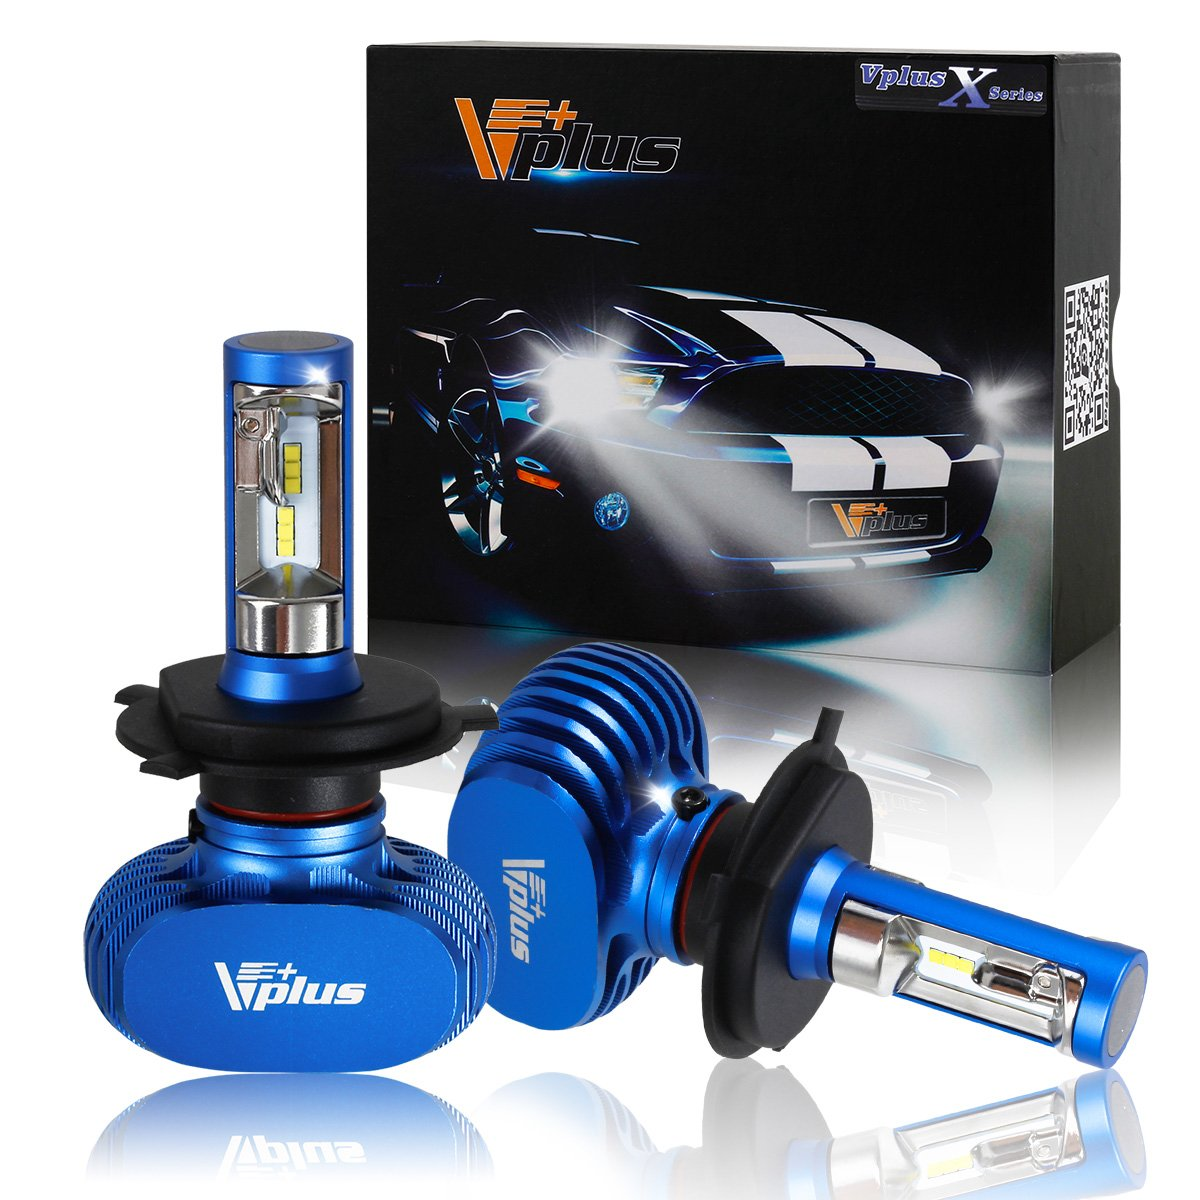 Amazon com vplus x series led headlight bulbs w clear arc beam kit h4 9003 hb2 72w 8 000lm 6500k white seoul w no fan all in one headlamp led